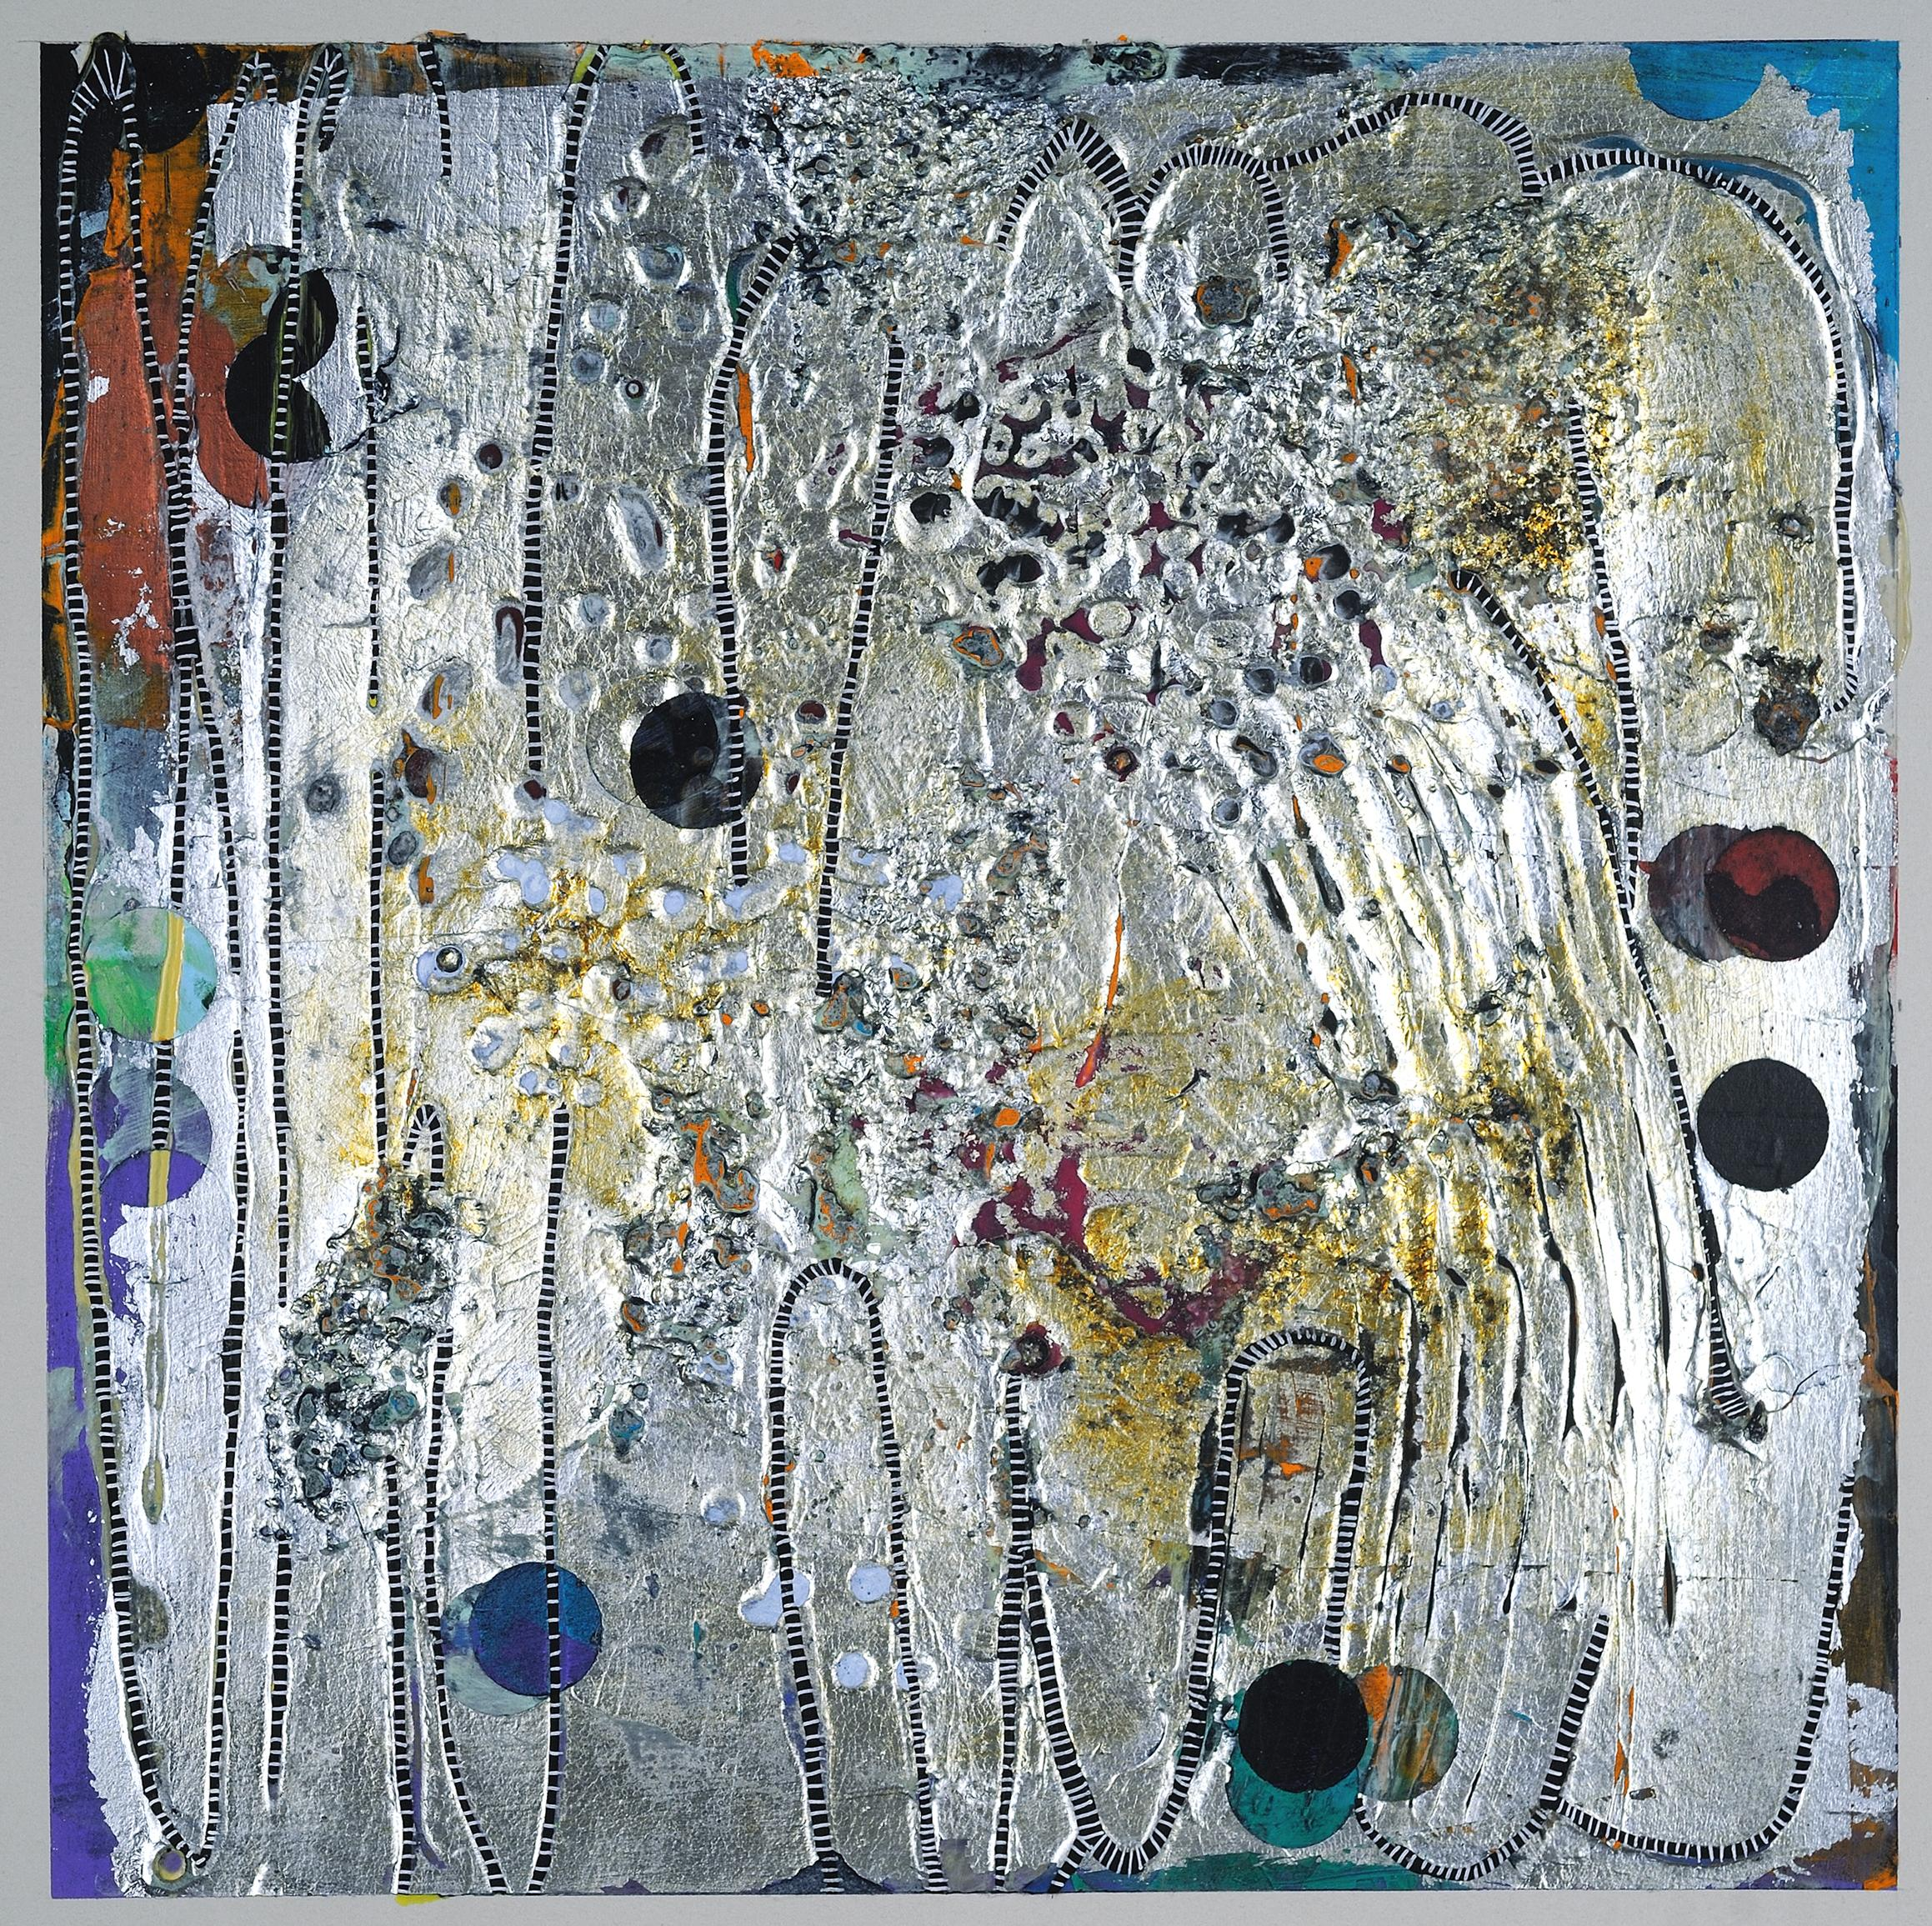 Confluence #3, small abstract work on paper, multicolored and silver